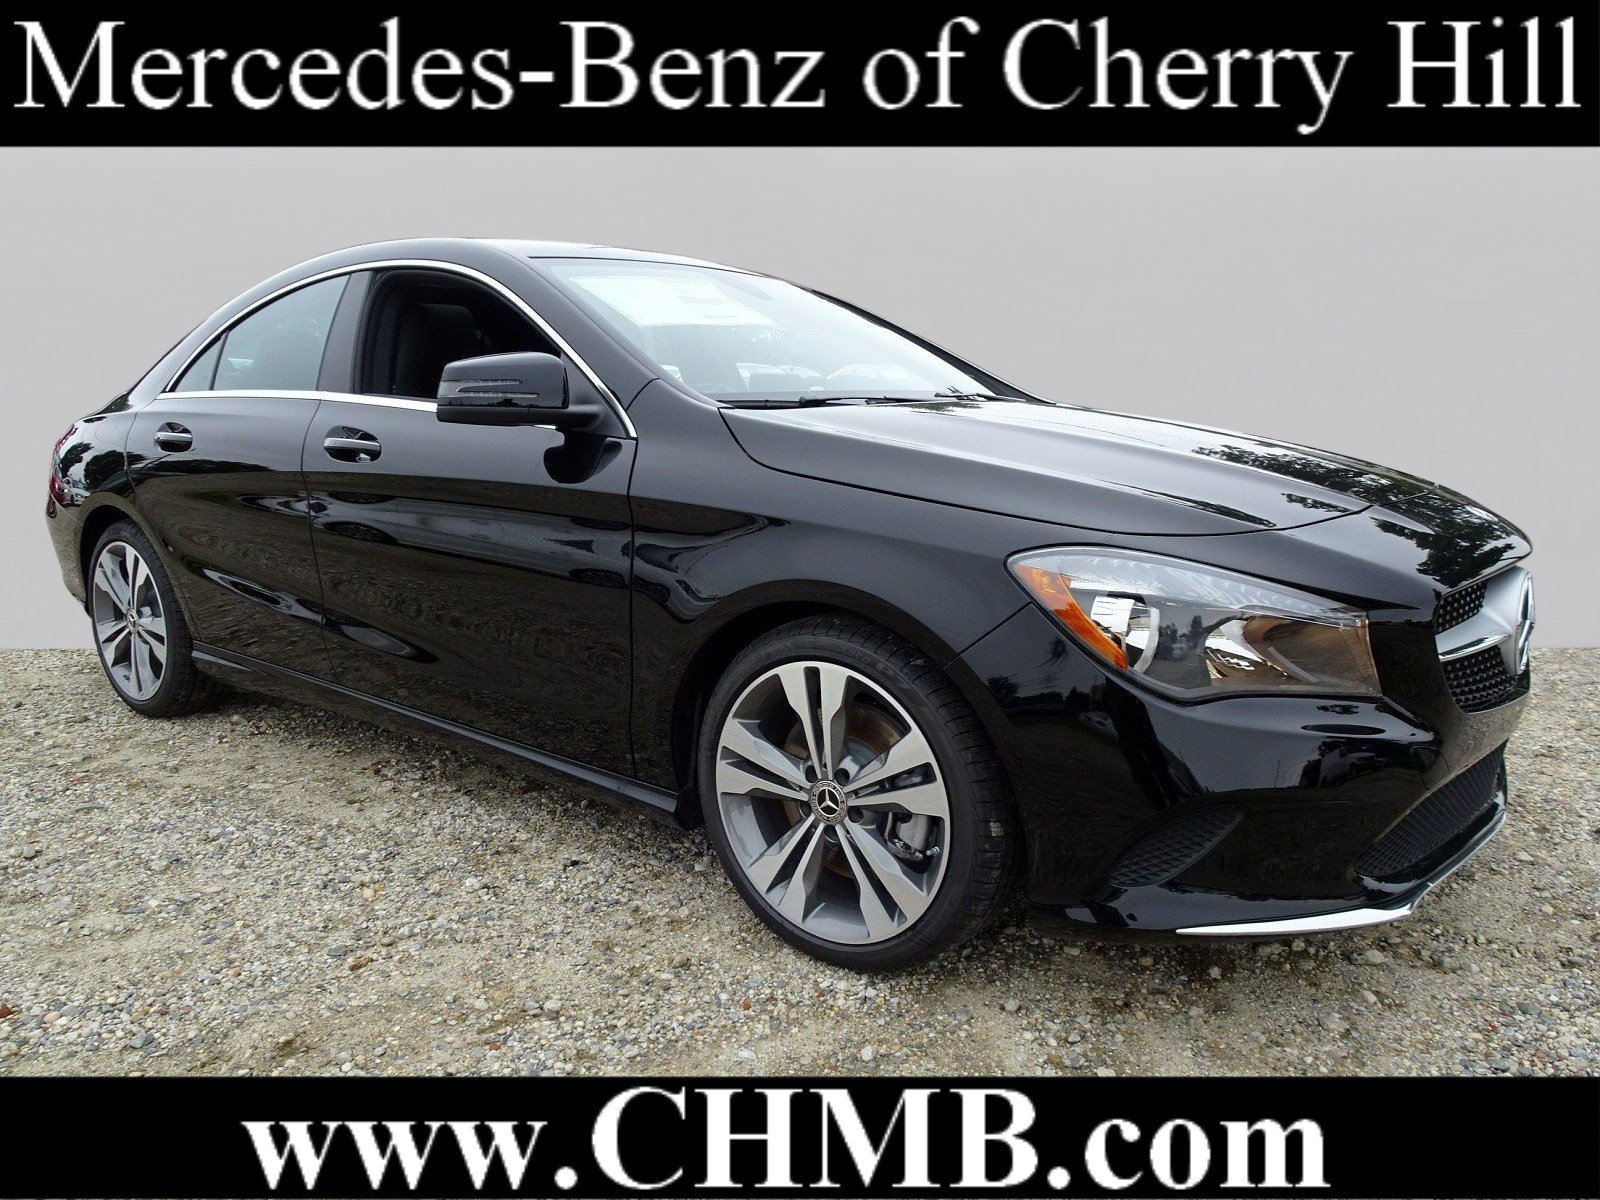 New 2019 Mercedes Benz Cla Cla 250 Coupe In Cherry Hill M2236